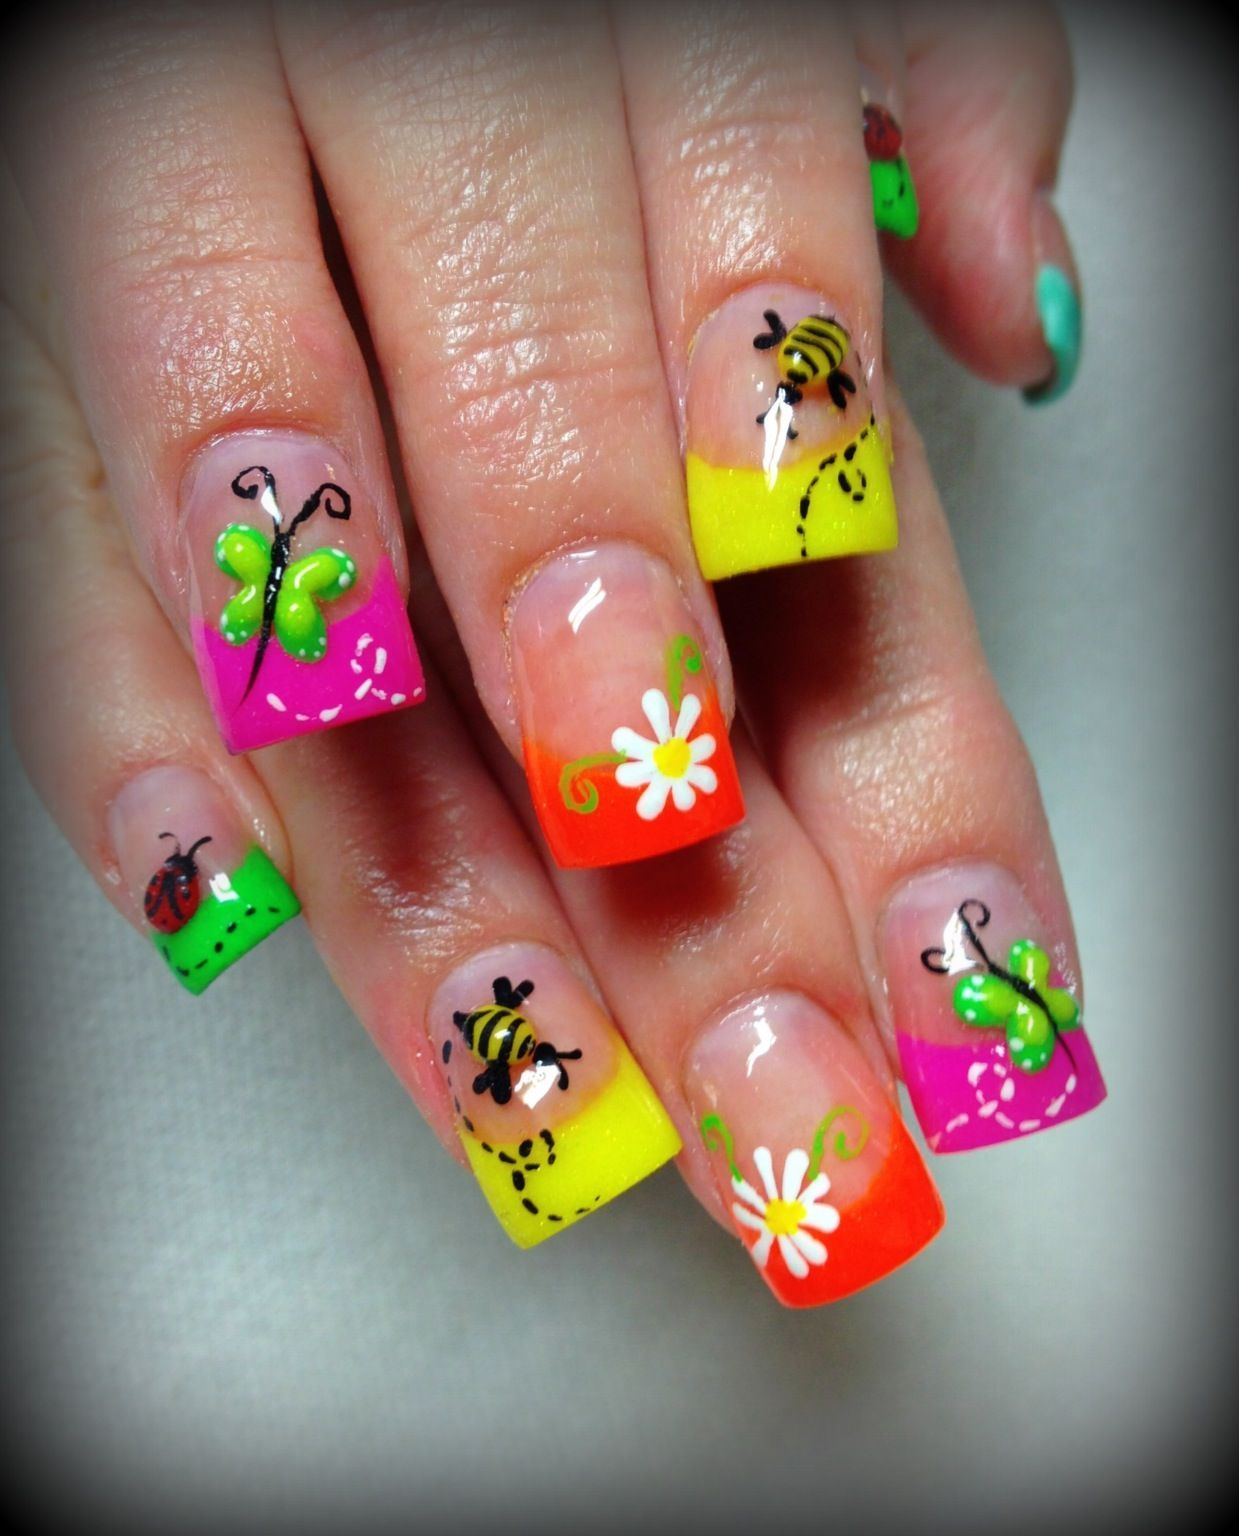 Amazing-Summer-Nail-Art-Designs-Ideas-For-Girls-2013-9 ...